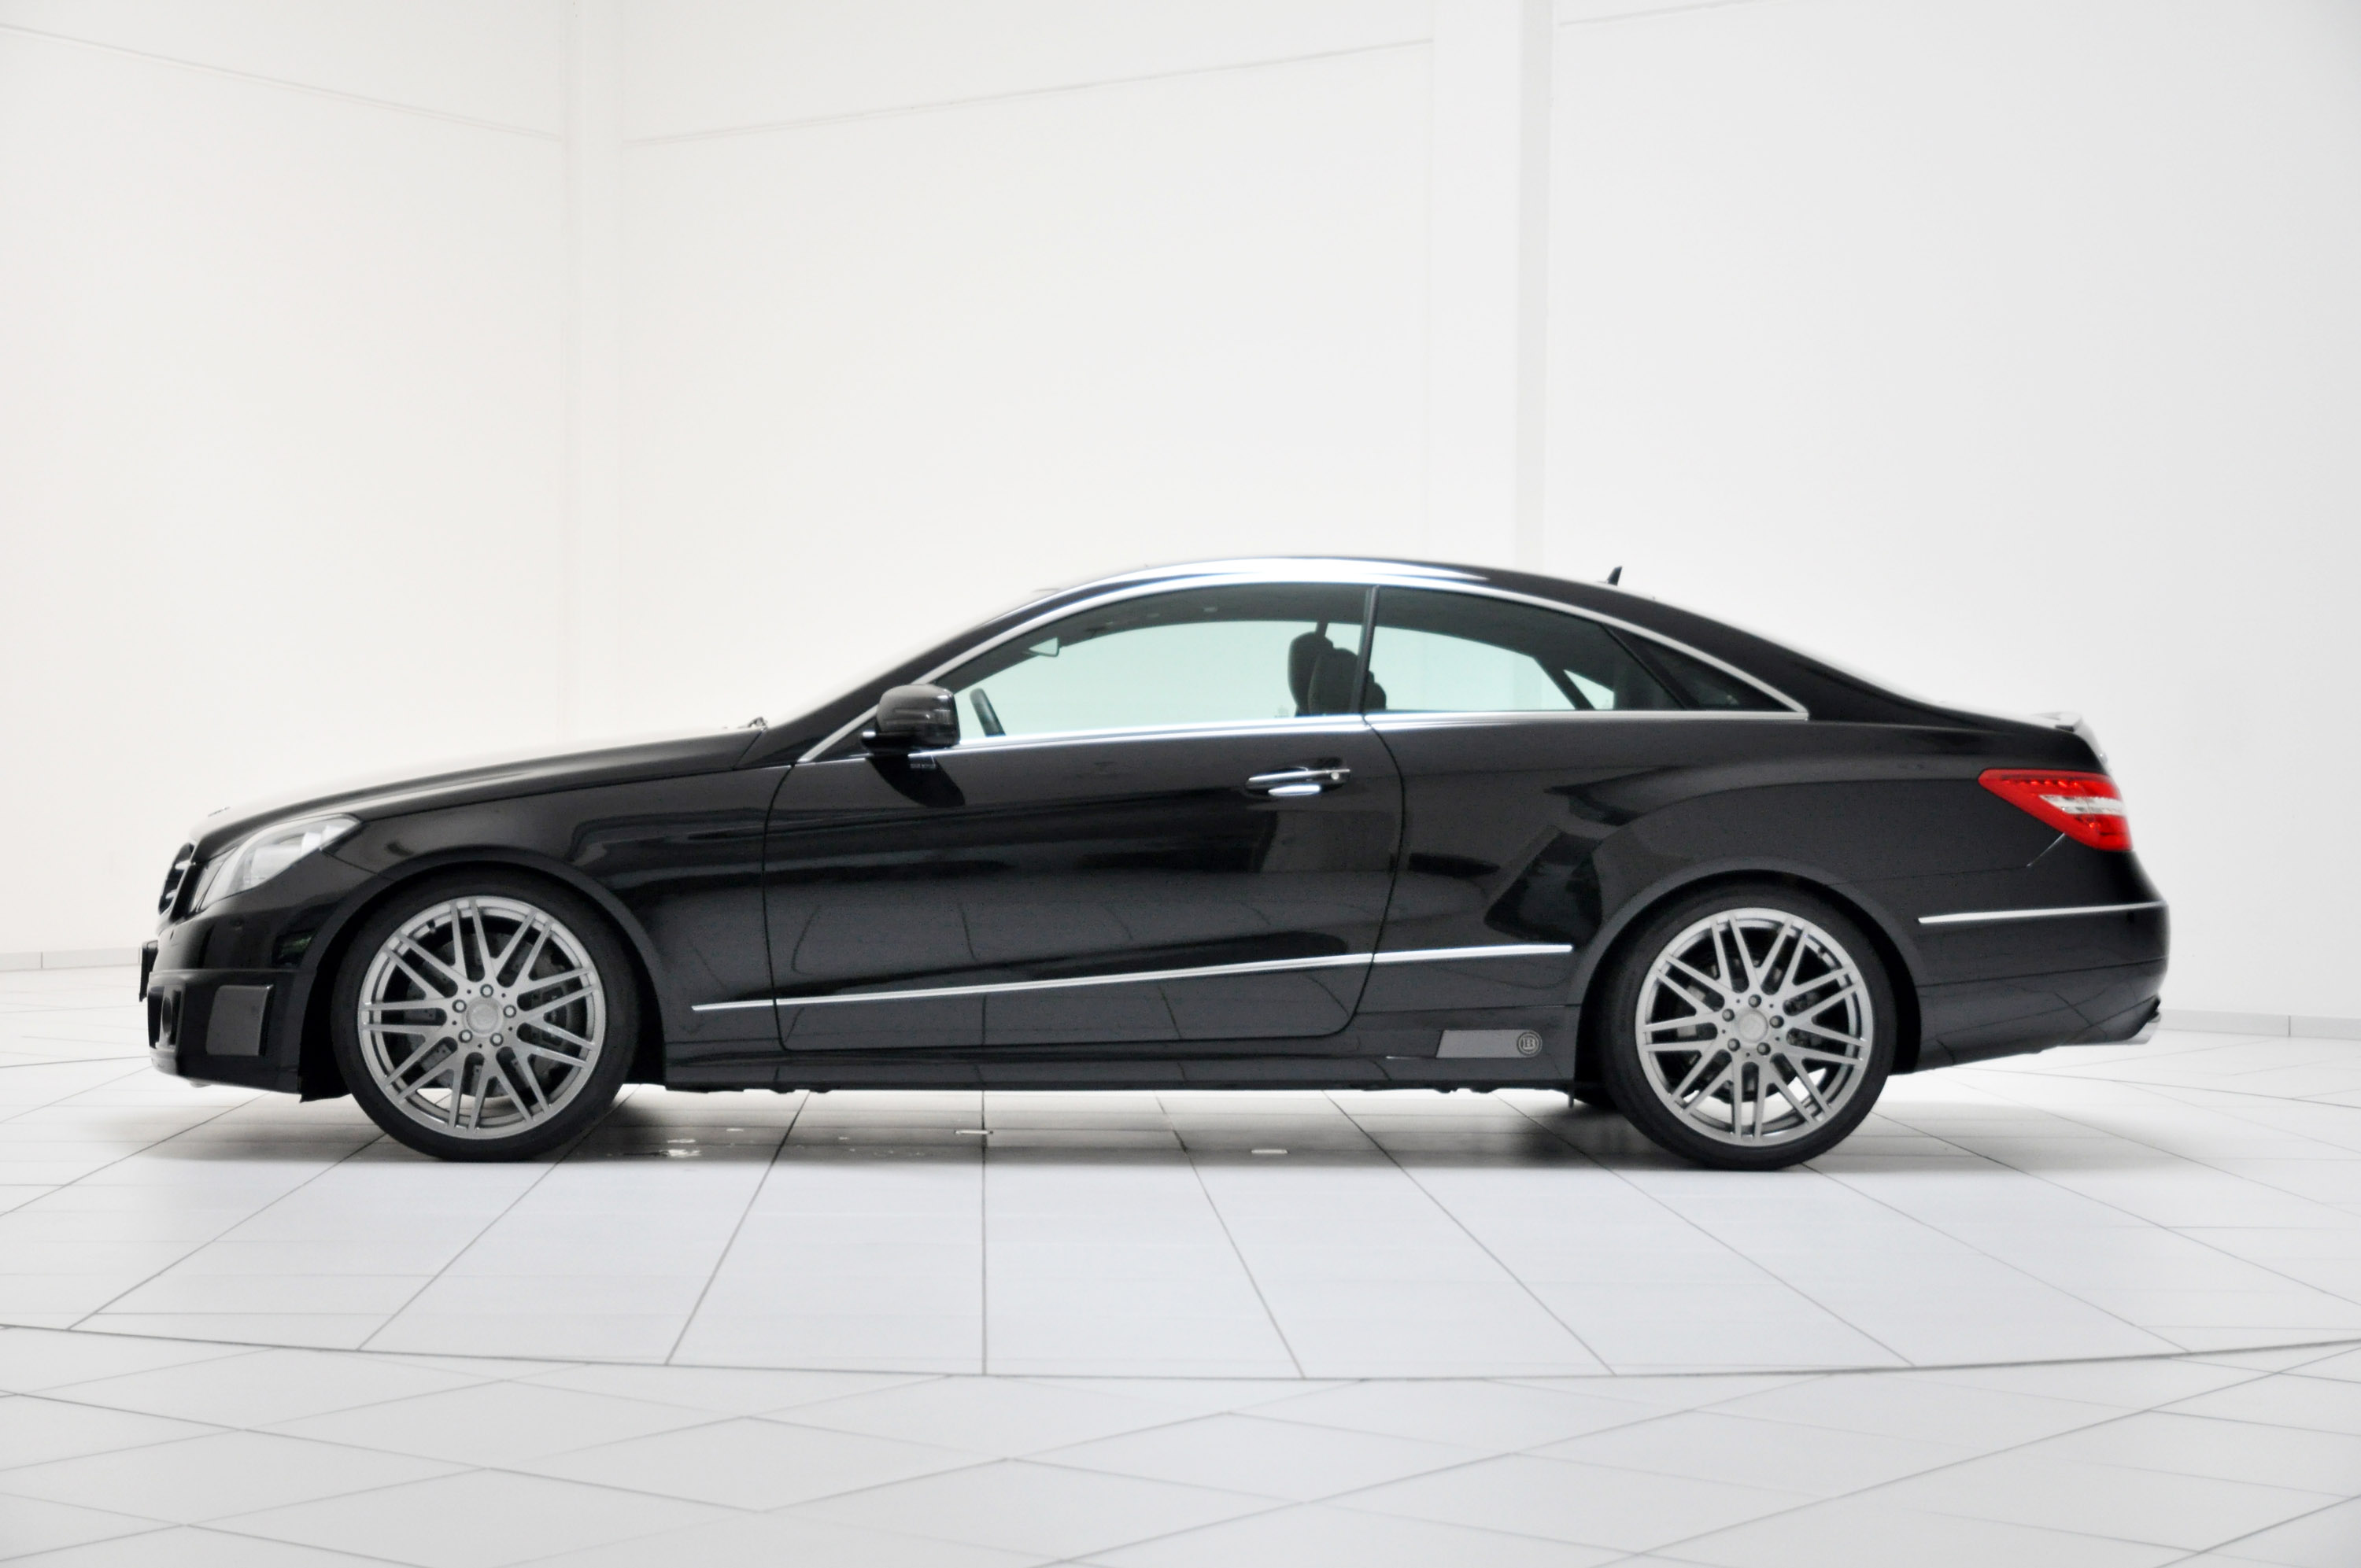 brabus b50 mercedes e class coupe. Black Bedroom Furniture Sets. Home Design Ideas